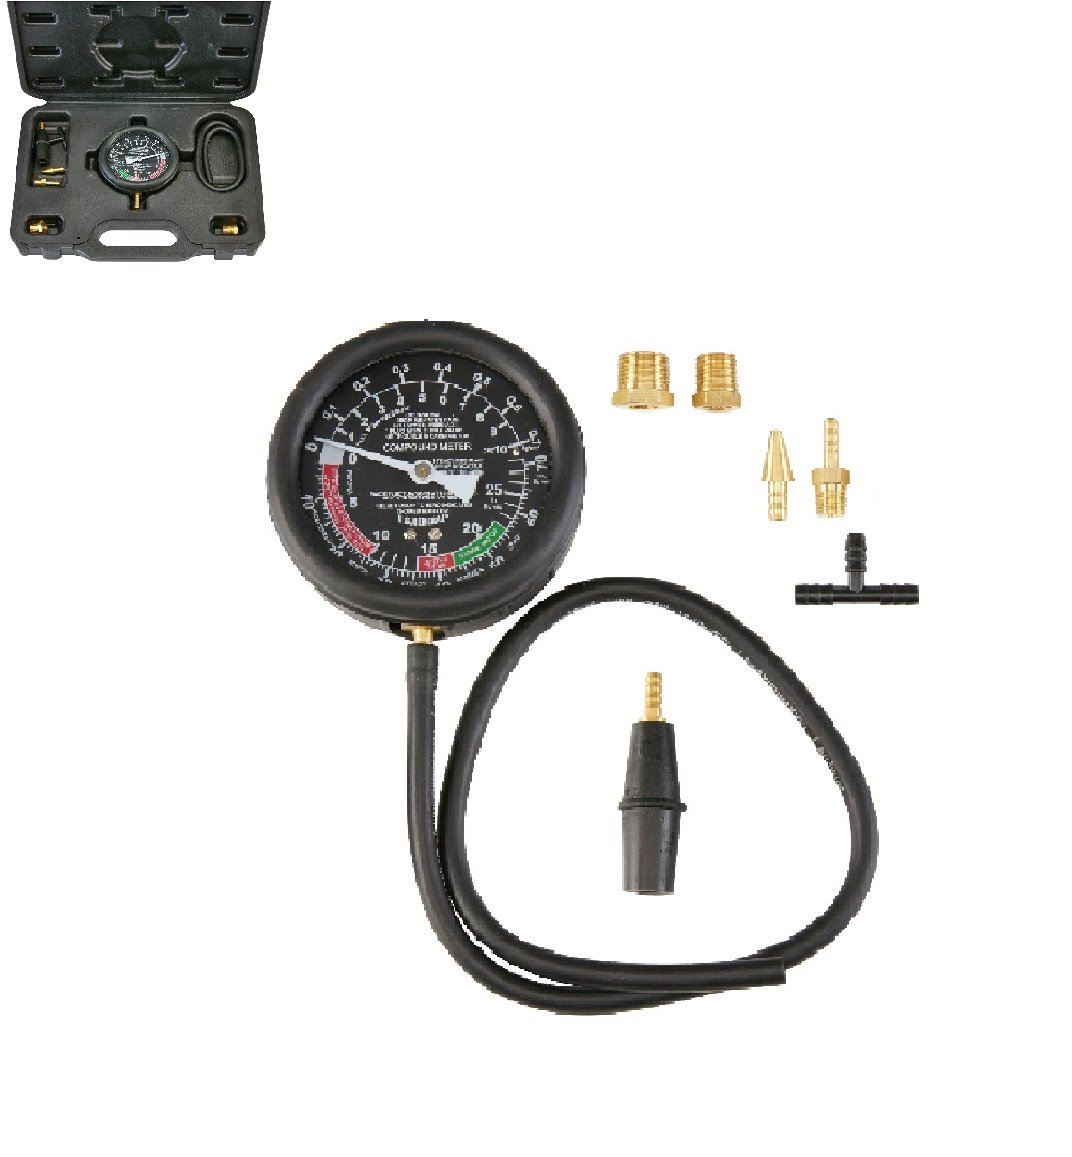 New Professional Mechanic 4 in. Gauge with Brass Accessories Fittings Fuel Pump & Vacuum Tester Auto Car Truck Improper Valve Timing Burned Stuck valves Sticking Choke Leaking Fuel Mixture